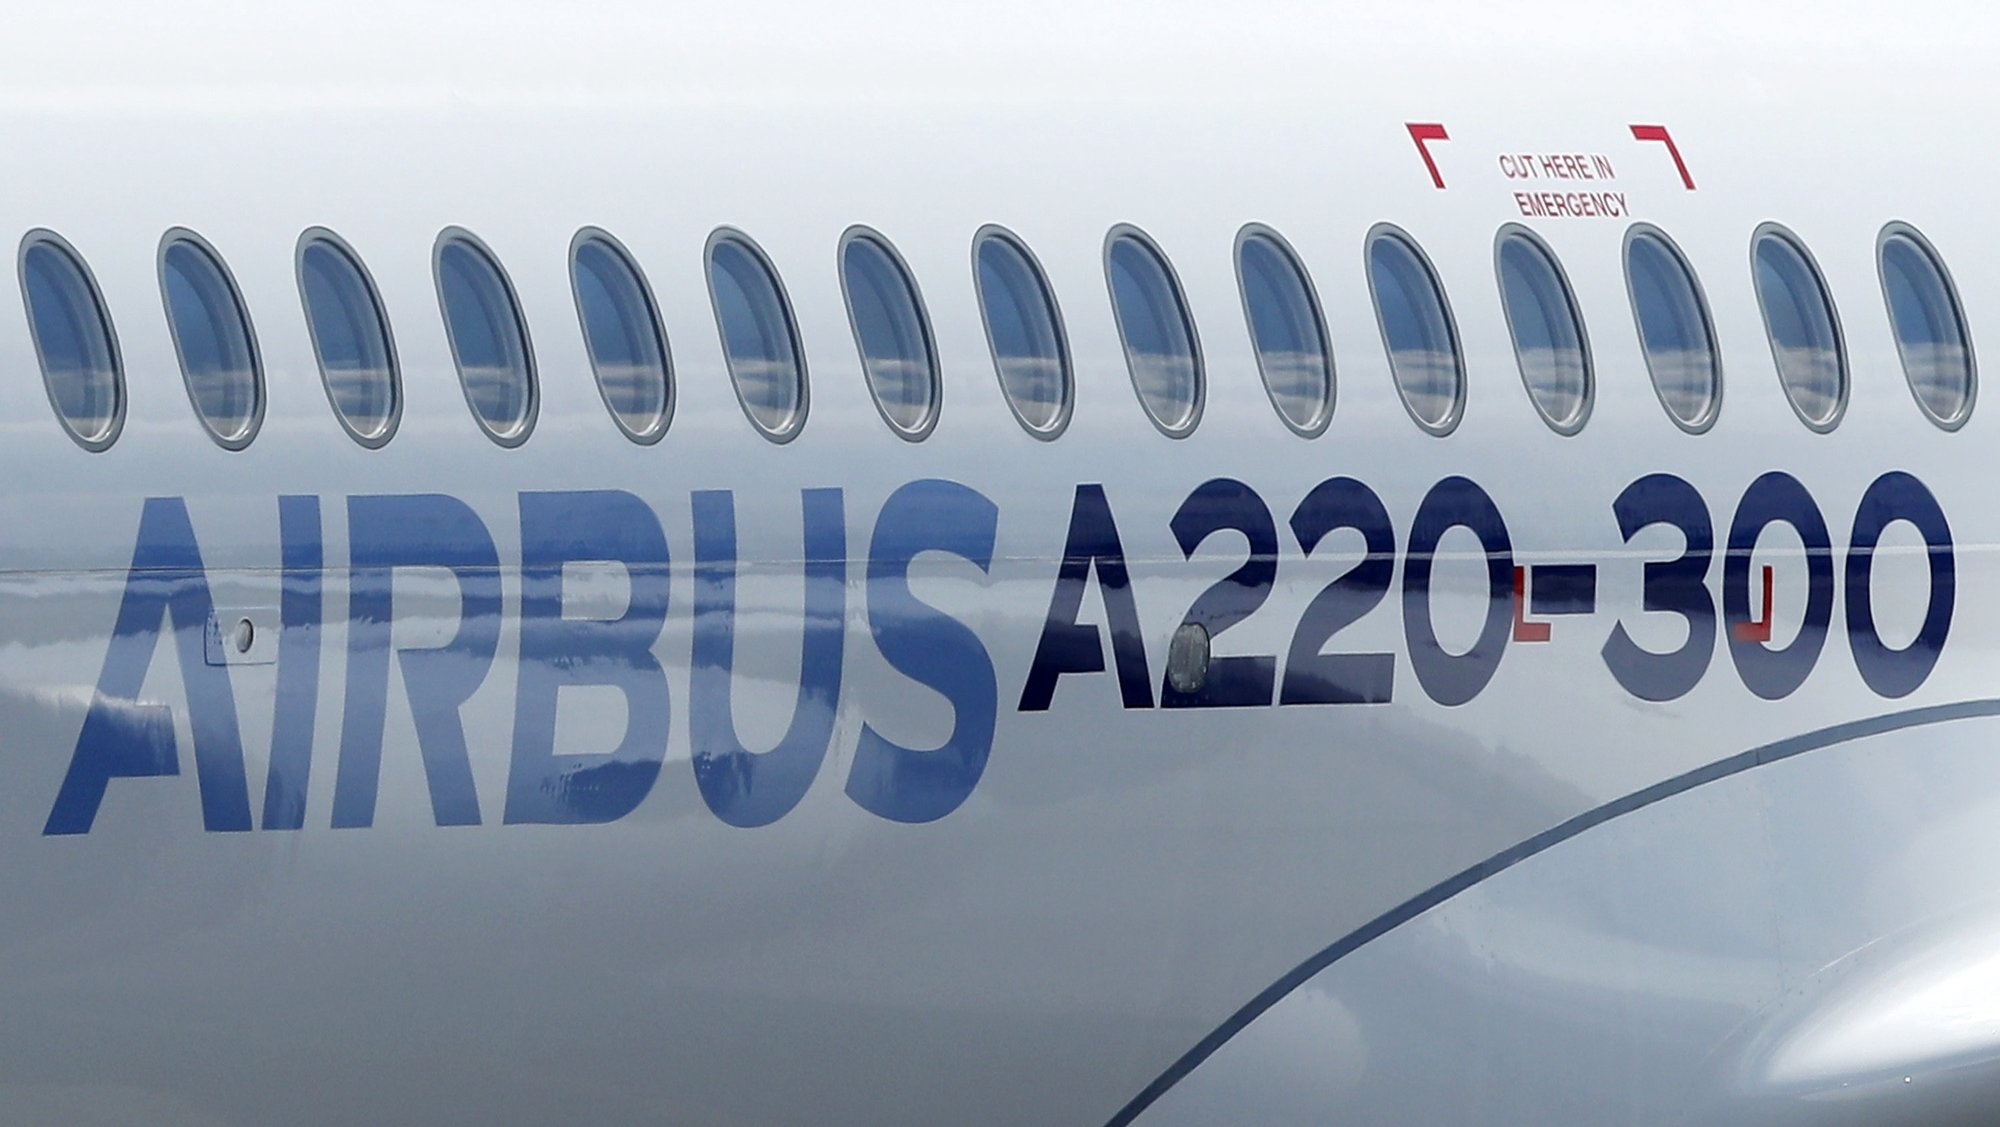 epa06877729 A new Airbus A220-300 aircraft during the presentation of the new Airbus A220-300 Single-Aisle aircraft at the Airbus's delivery center in Colomiers, near Toulouse, France, 10 July 2018. After taking the control of Bombardier aircraft manufacturer on June 2018, the CSeries program CS 100 and CS 300 becomes the new Airbus A220-300 Single-Aisle aircraft.  EPA/GUILLAUME HORCAJUELO